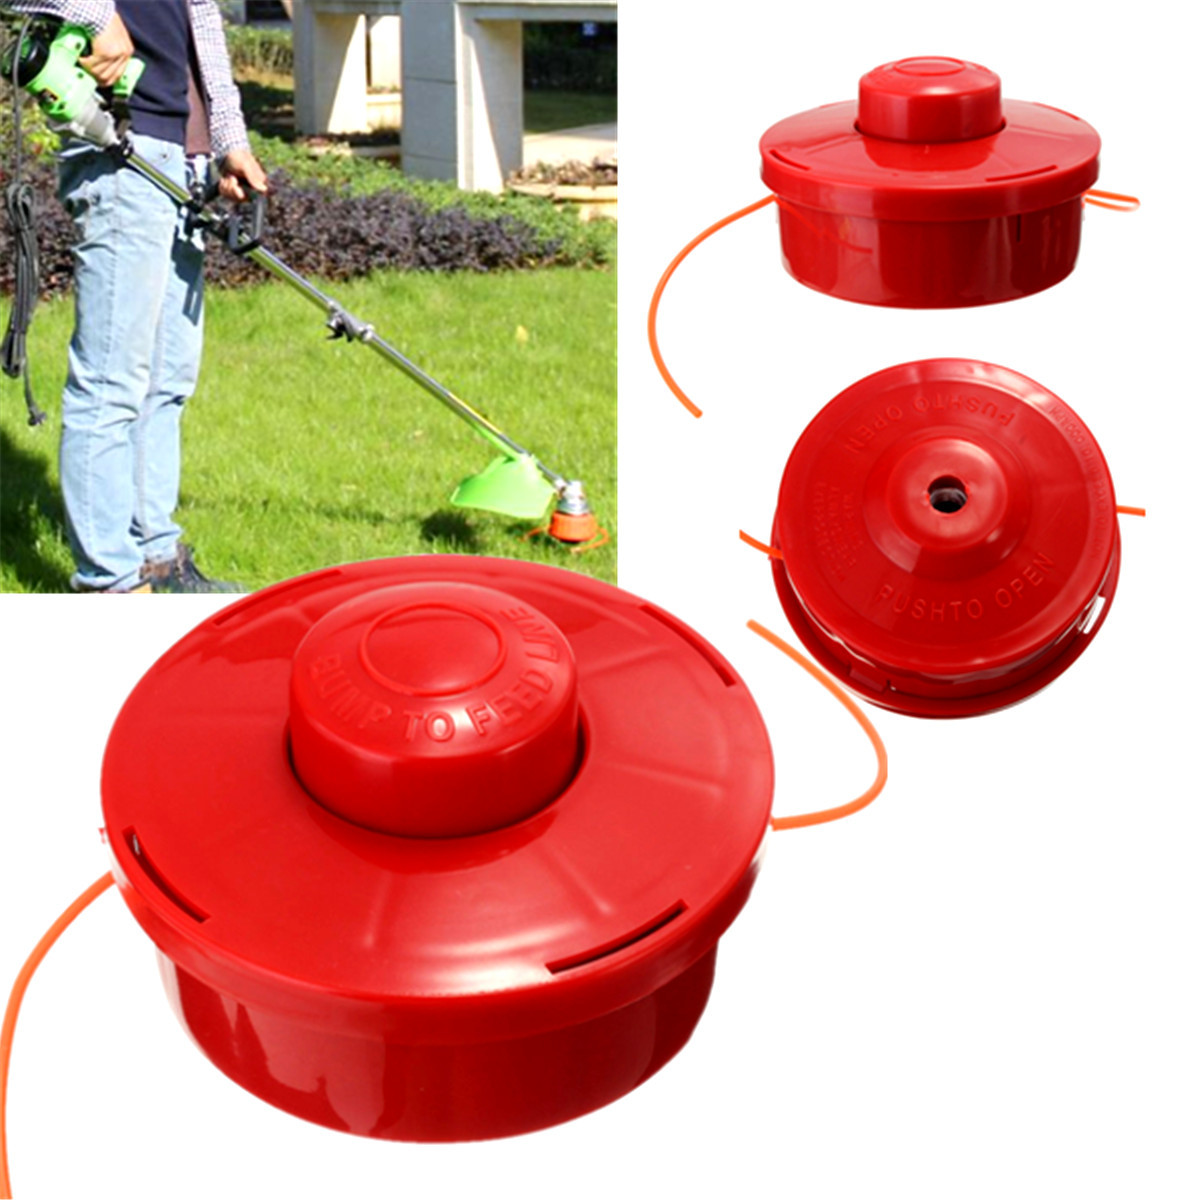 Universals Nylone Line Bump Cutting Trimmer Head Grass Trimmer Head Garden Strimmer Lawn Mower Mounting Weeder Garden Accessory